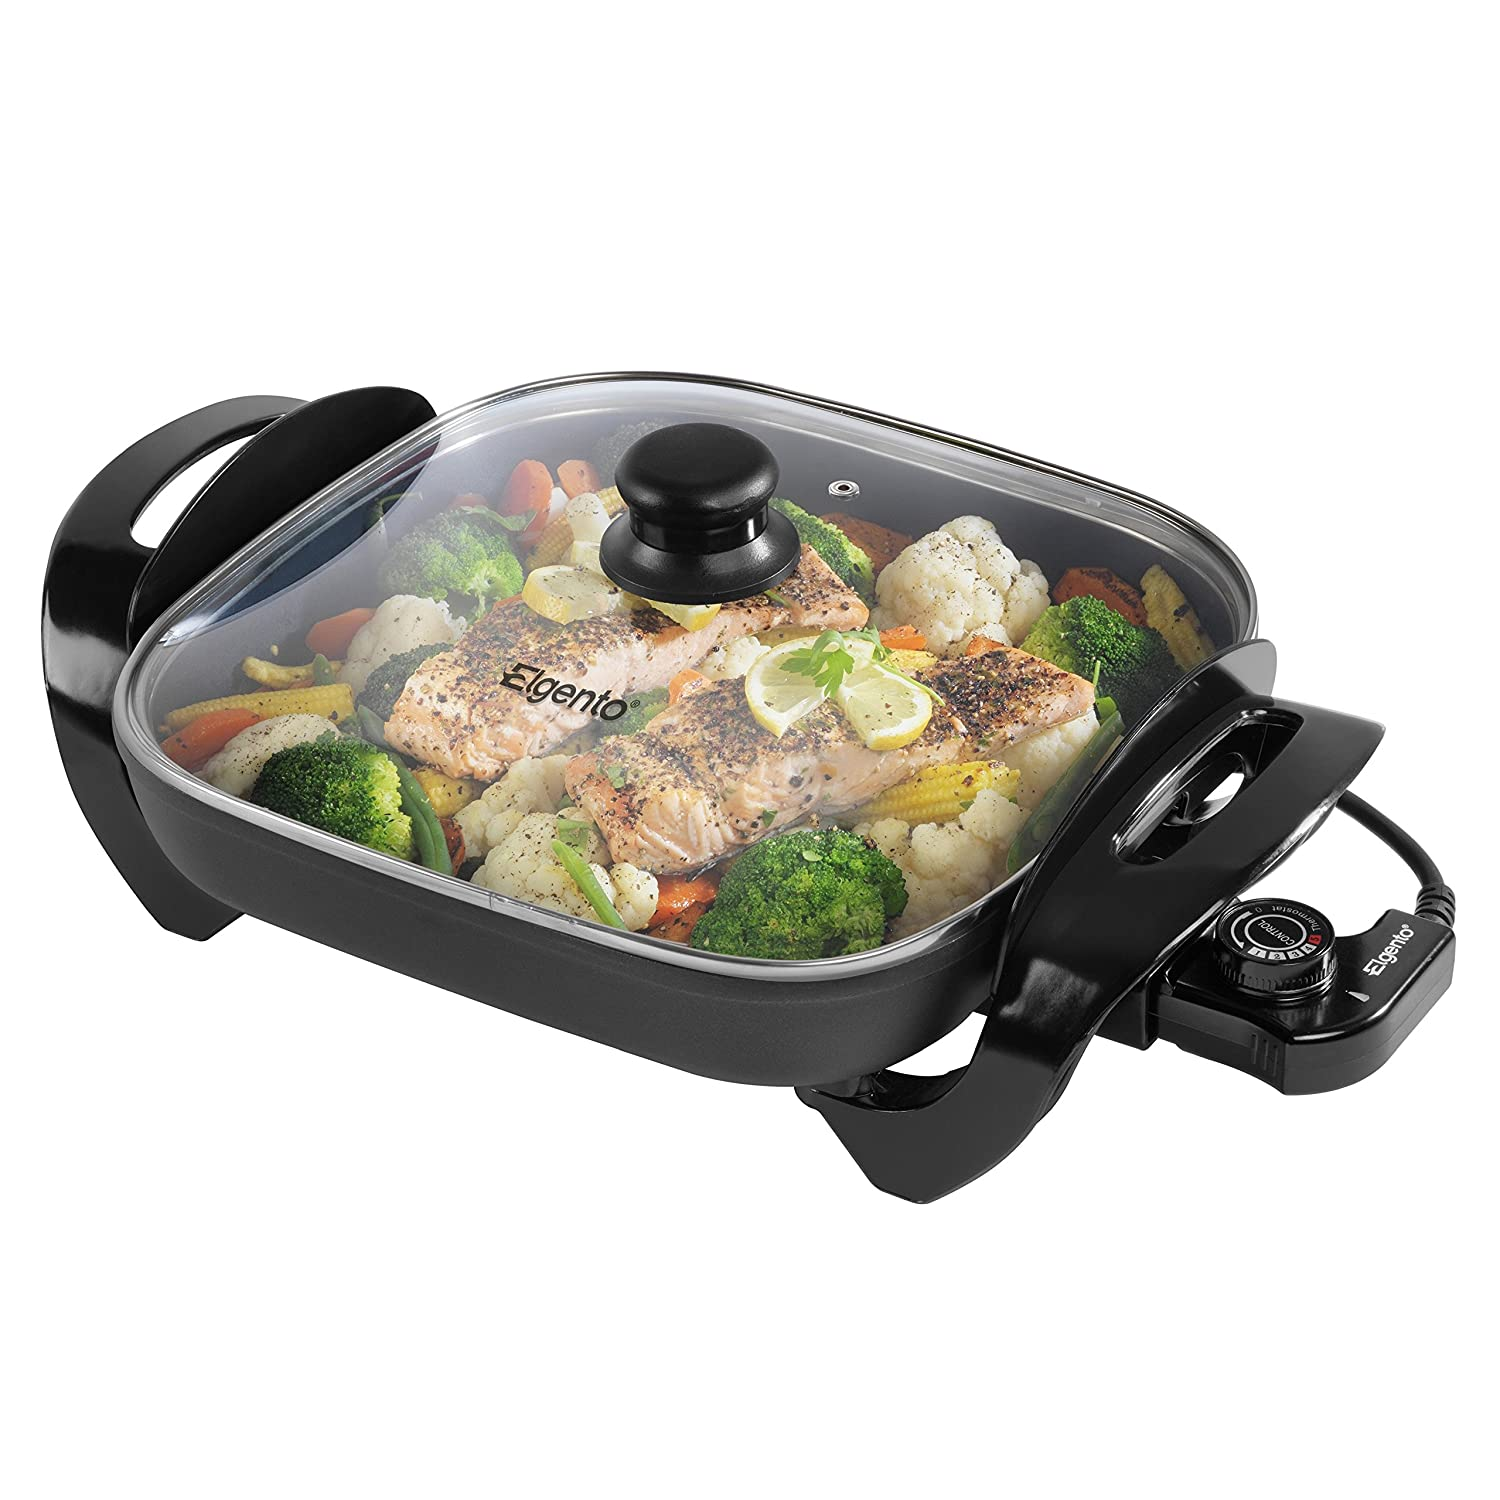 Elgento E14024 Electric Frying Pan